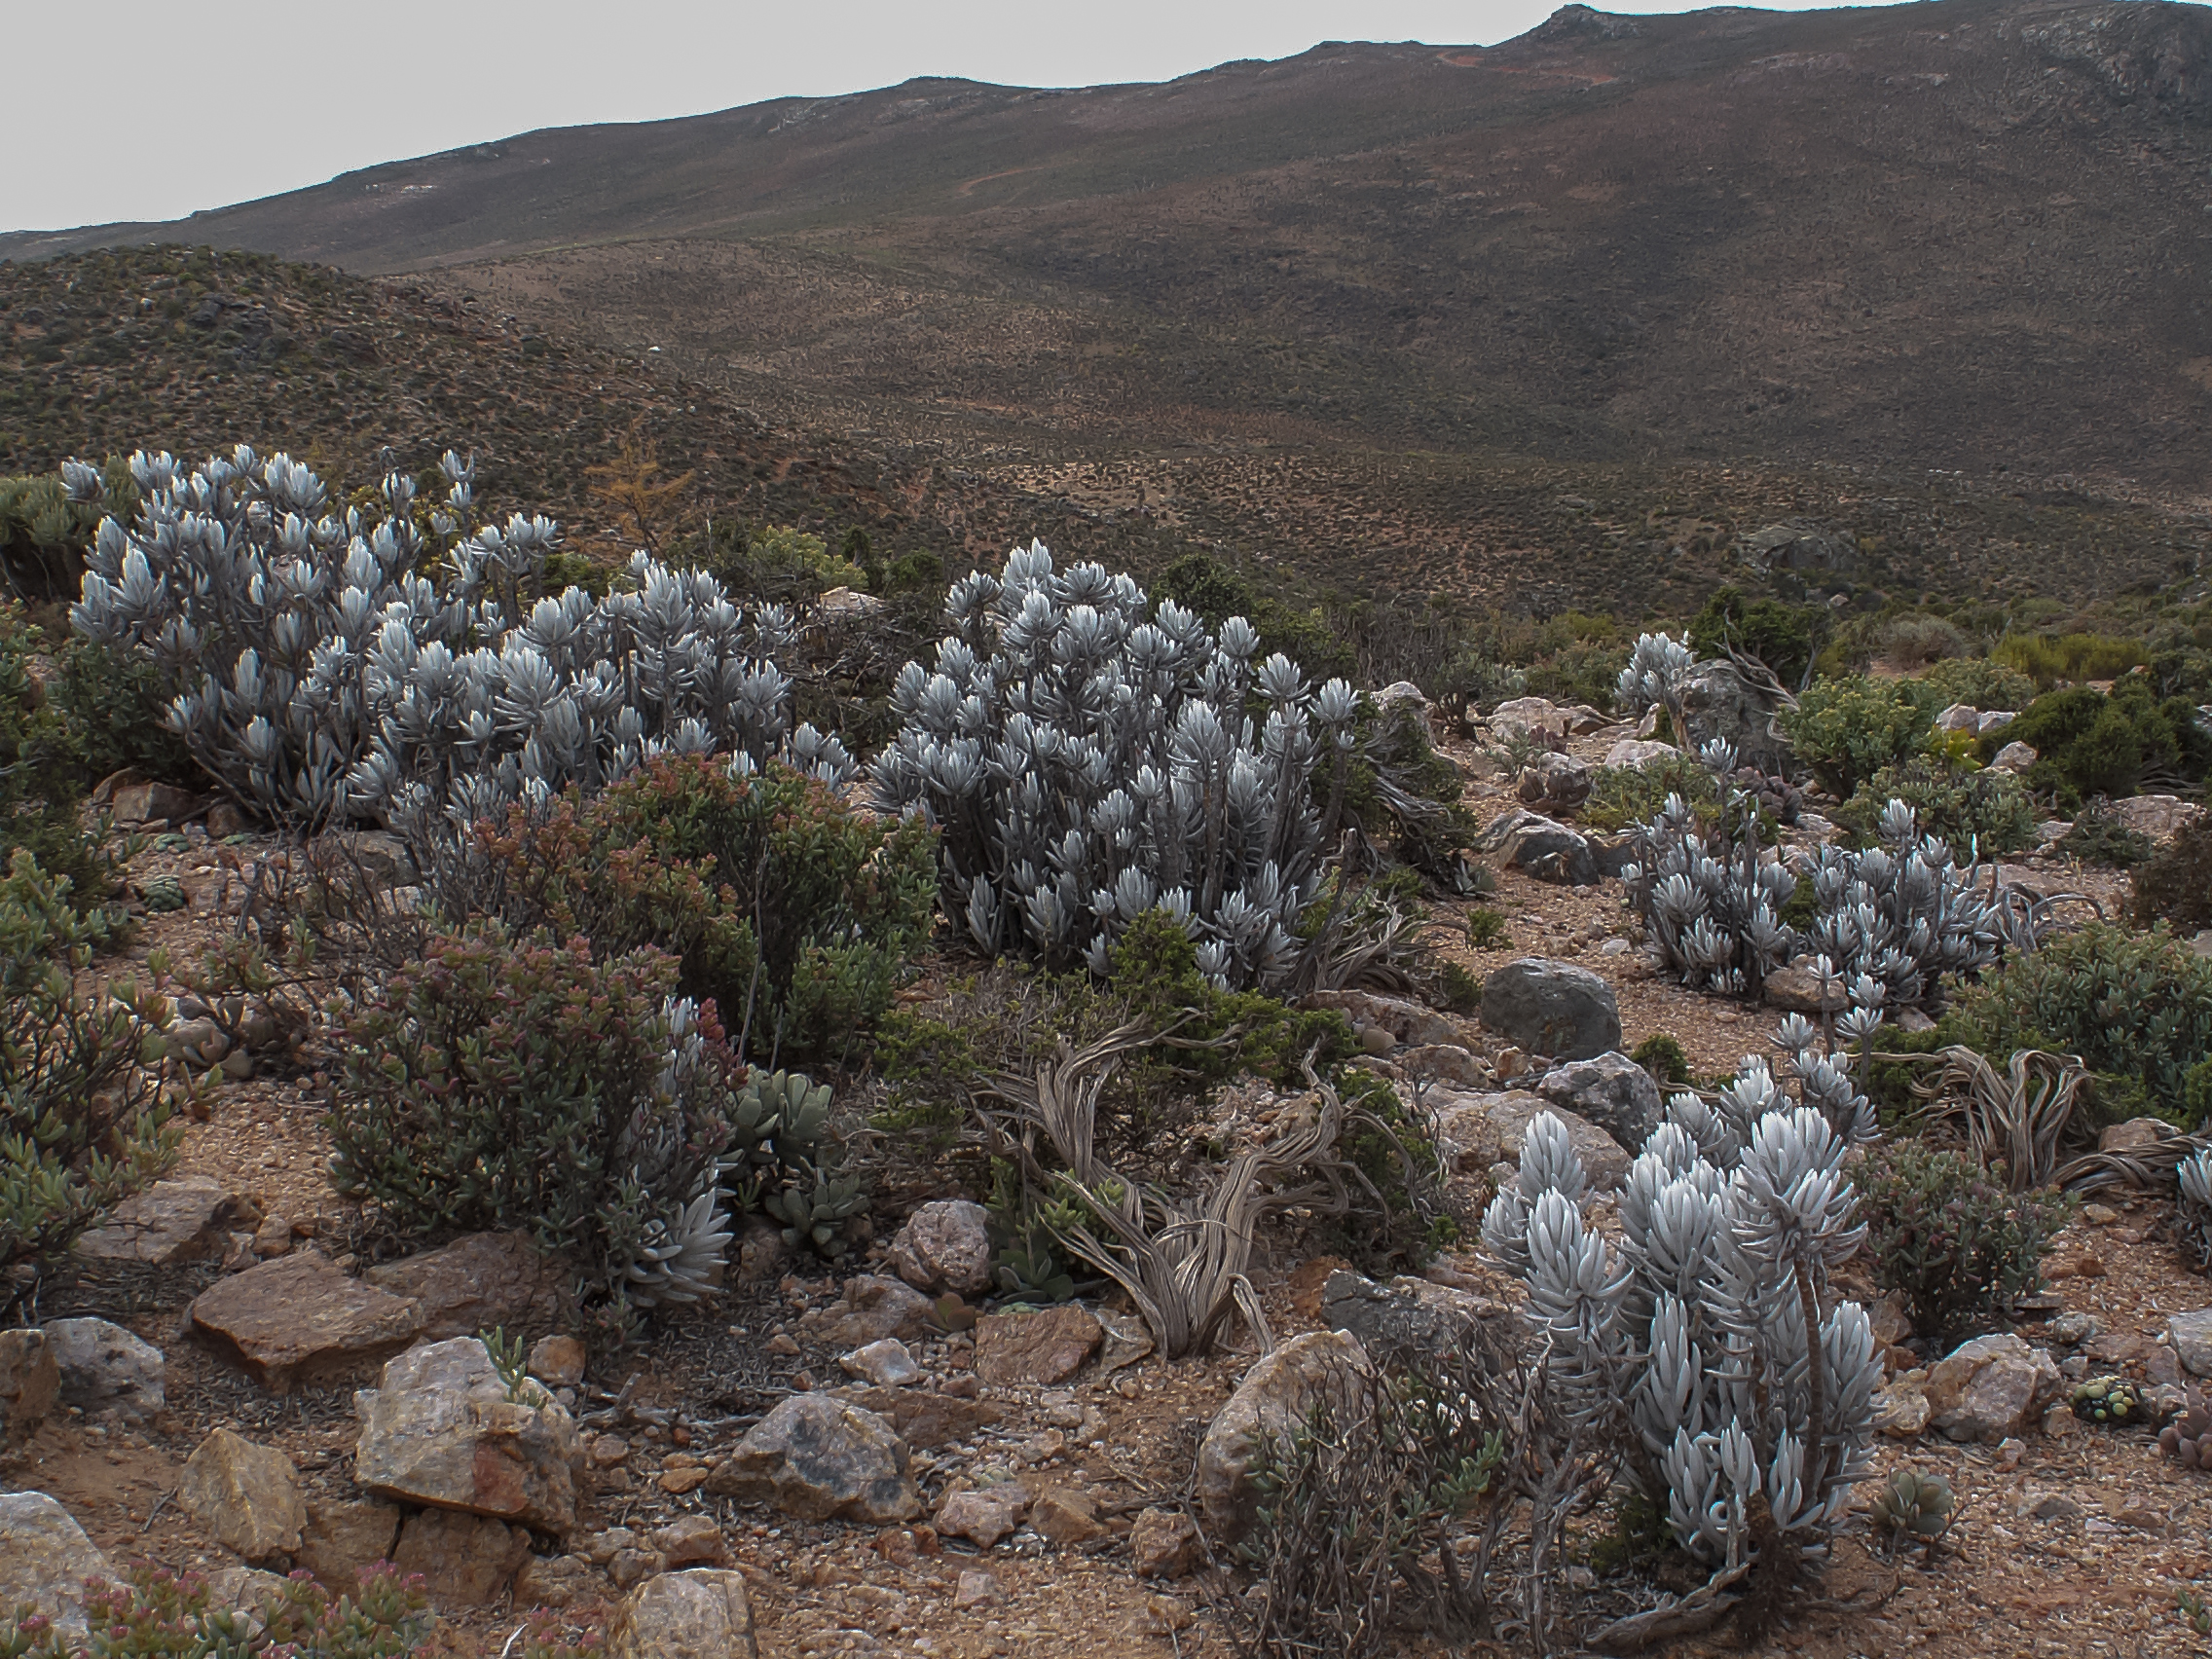 A terrestrial ecosystem in South Africa.